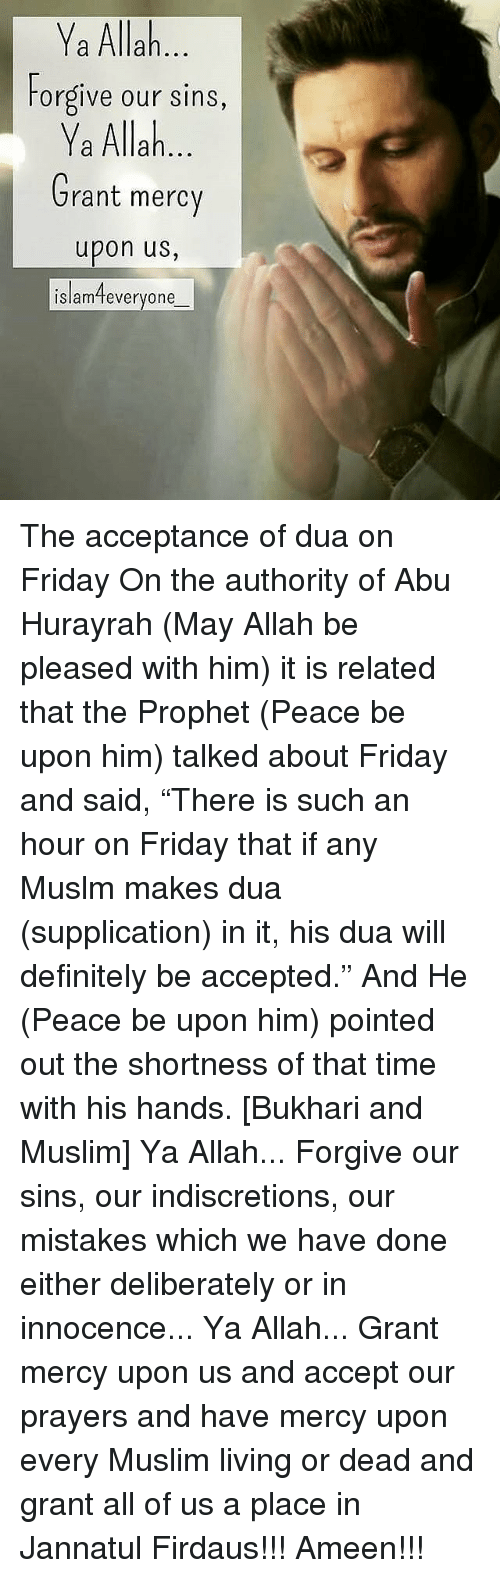 "Definitely, Friday, and Memes: Ya Allah  Forgive our sins,  Ya Allah  Grant mercy  upon us,  islamteveryone The acceptance of dua on Friday On the authority of Abu Hurayrah (May Allah be pleased with him) it is related that the Prophet (Peace be upon him) talked about Friday and said, ""There is such an hour on Friday that if any Muslm makes dua (supplication) in it, his dua will definitely be accepted."" And He (Peace be upon him) pointed out the shortness of that time with his hands. [Bukhari and Muslim] Ya Allah... Forgive our sins, our indiscretions, our mistakes which we have done either deliberately or in innocence... Ya Allah... Grant mercy upon us and accept our prayers and have mercy upon every Muslim living or dead and grant all of us a place in Jannatul Firdaus!!! Ameen!!!"